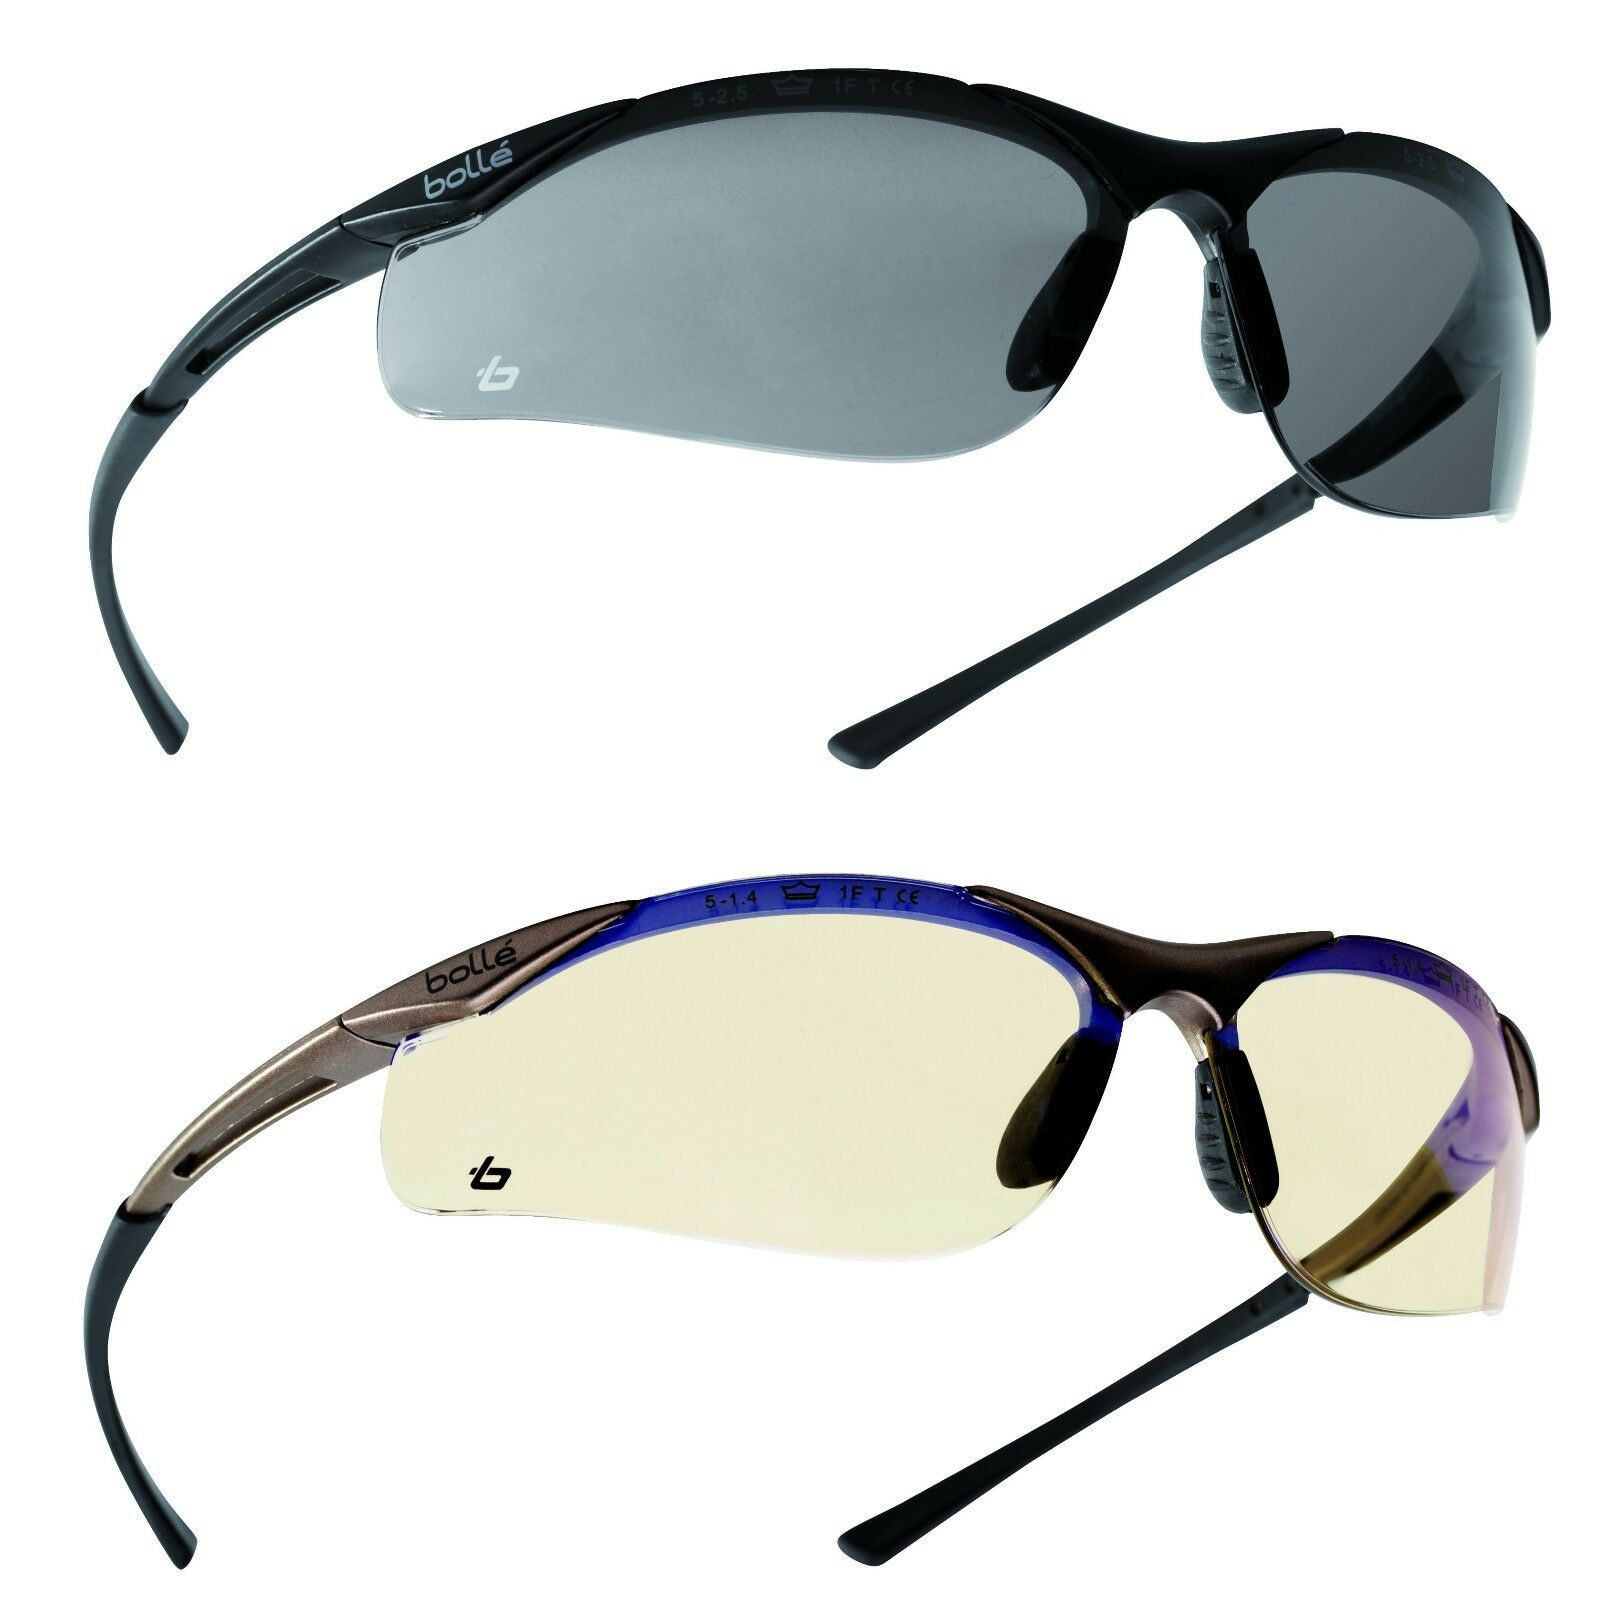 Lot 2 pairs Bollé predective glasses OUTLINE glasses ESP + Smoked